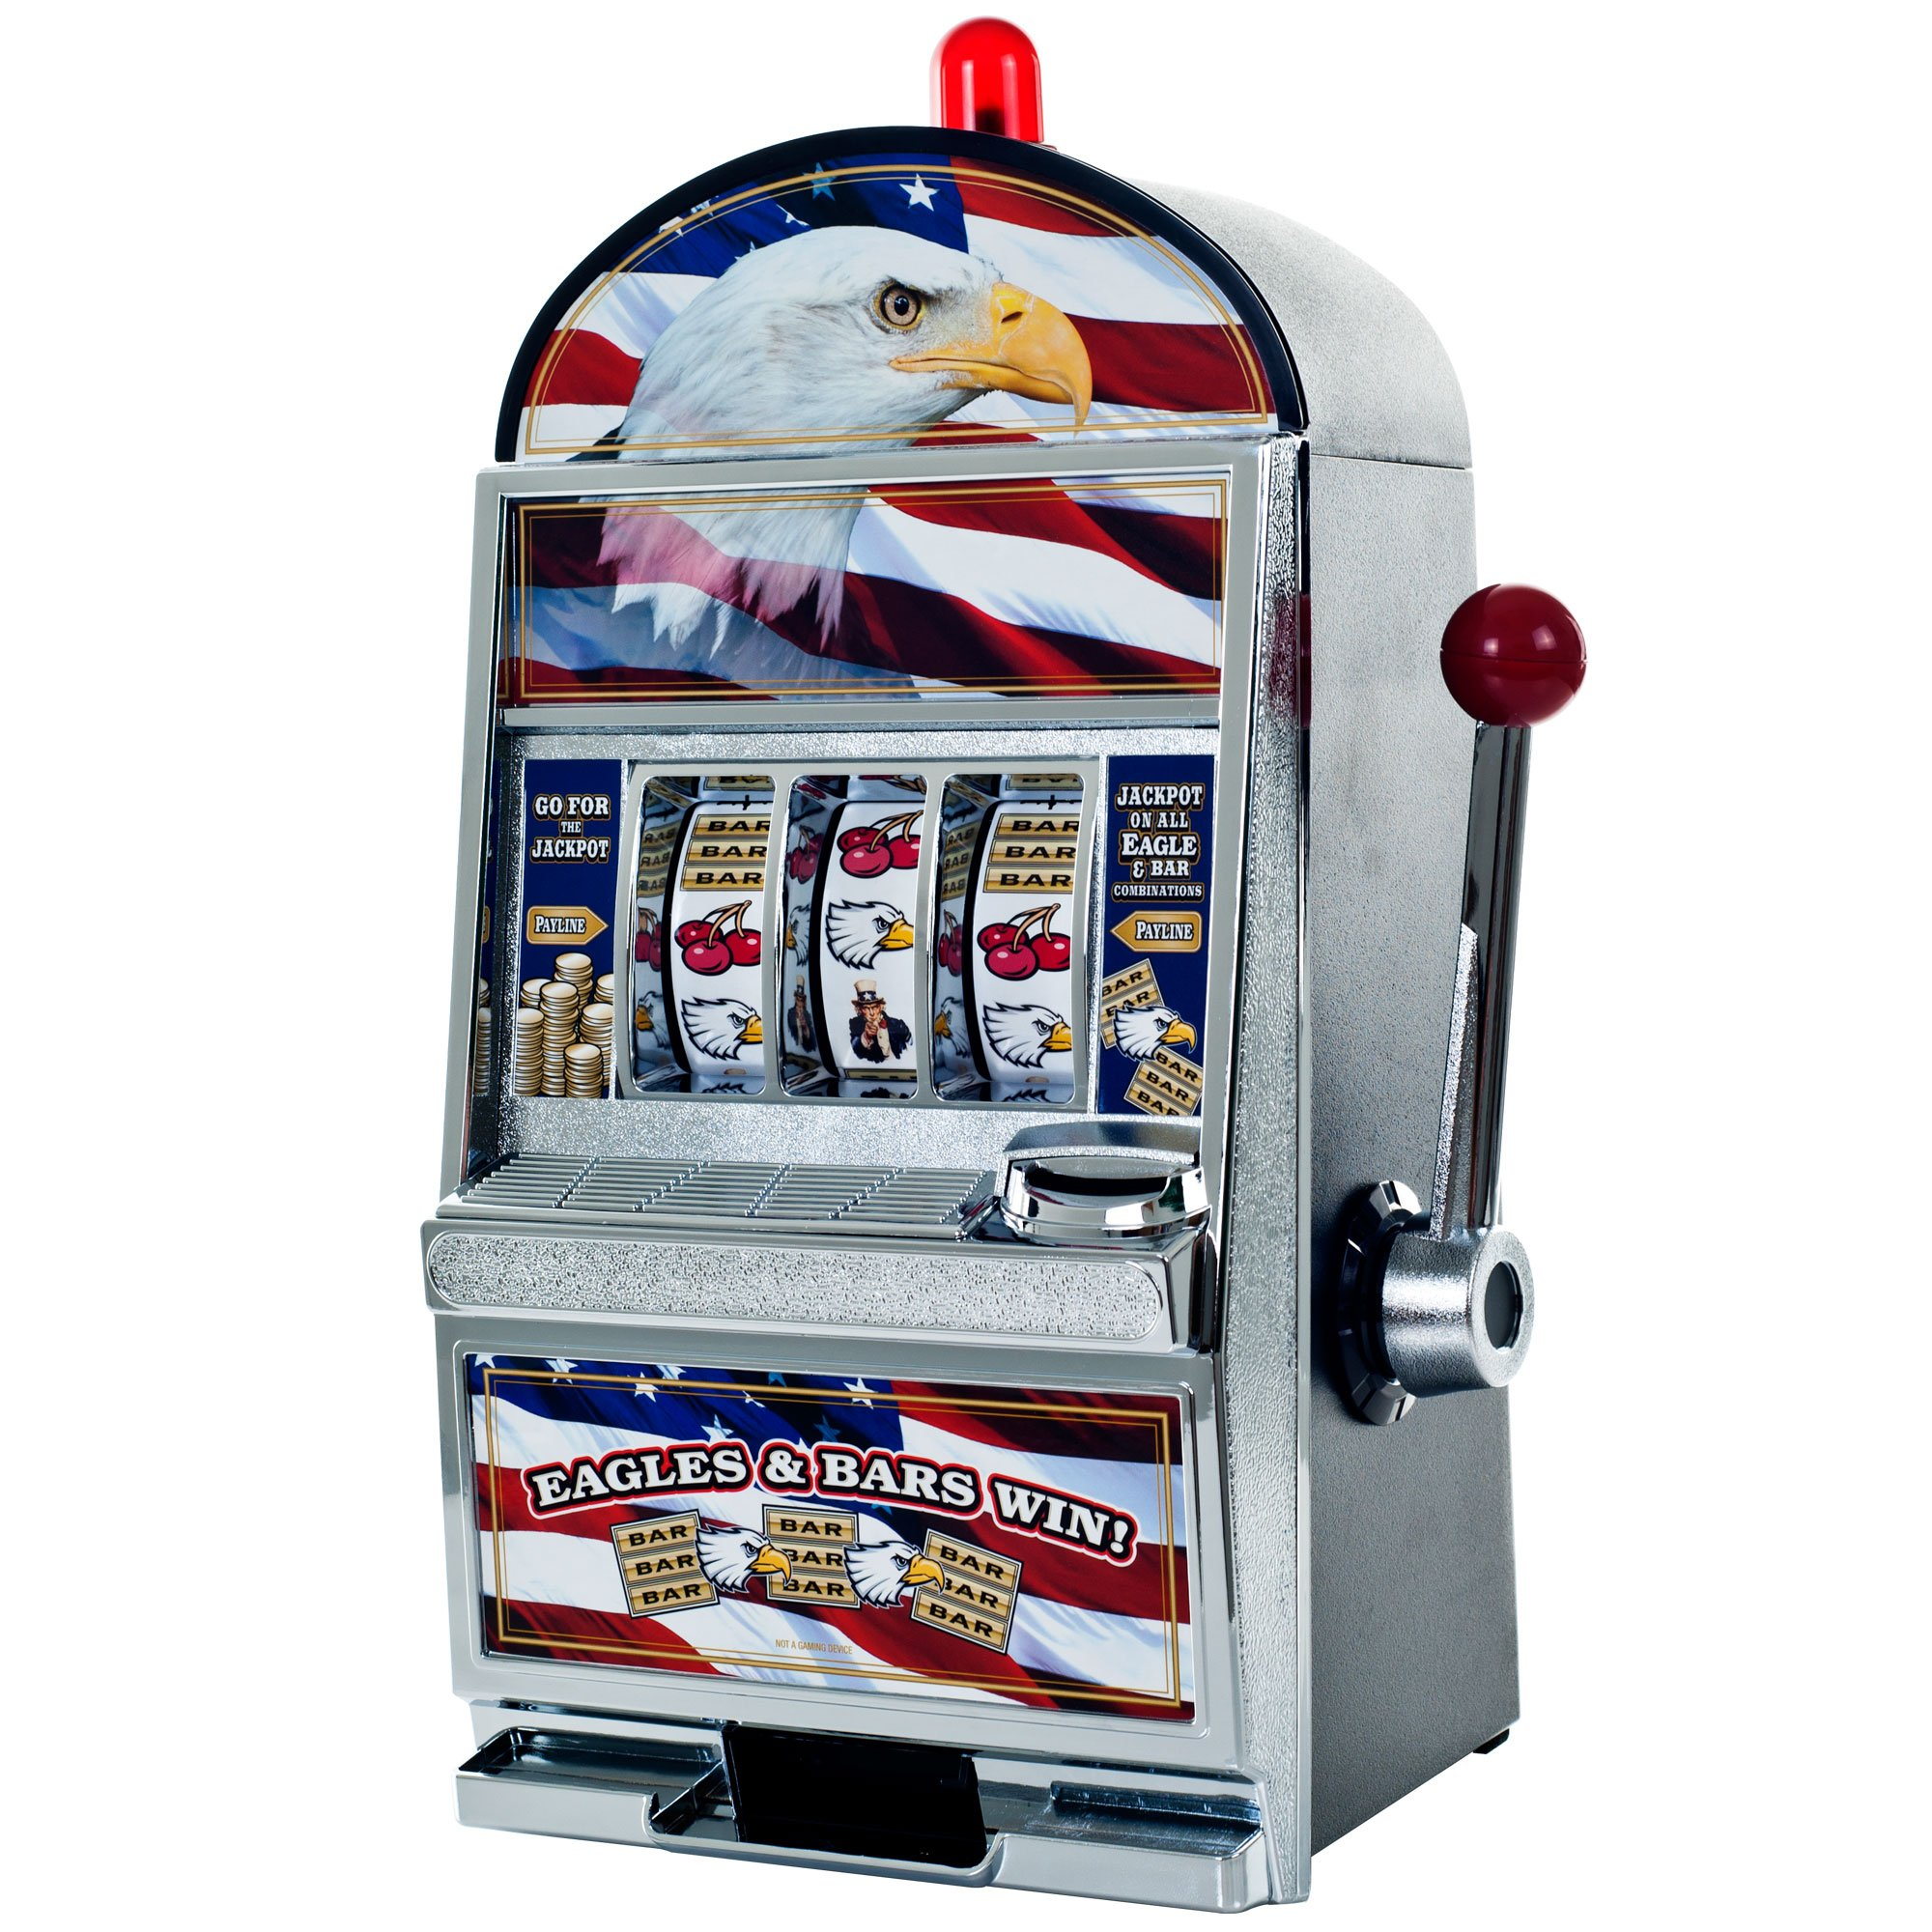 Trademark American Eagle Slot Machine Bank